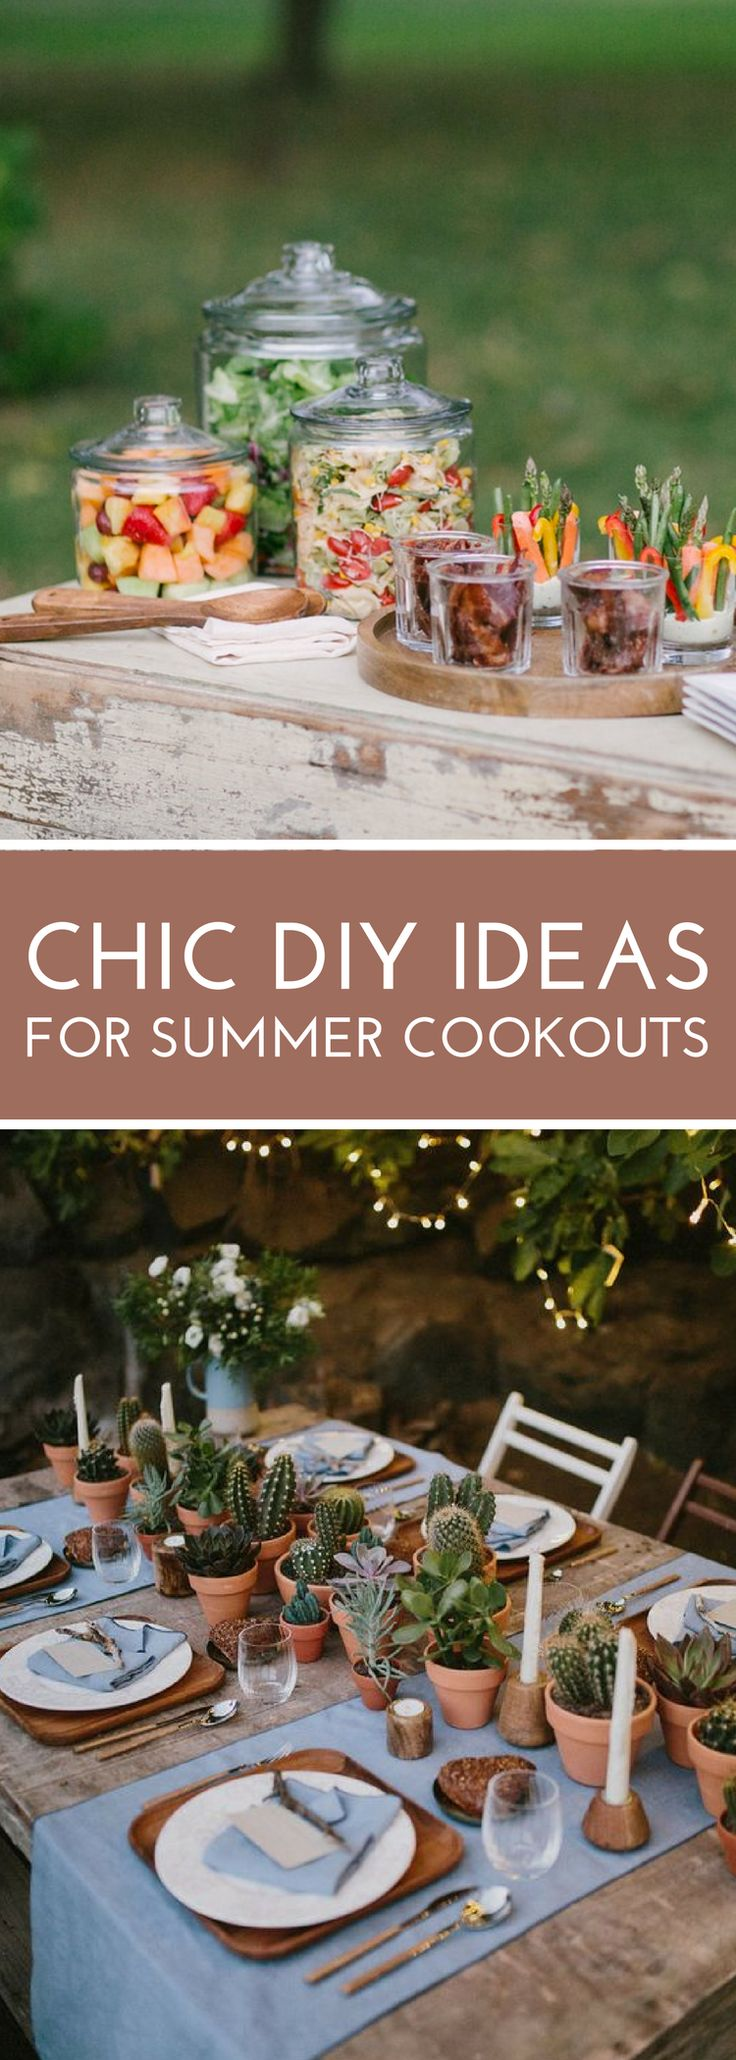 Elevate your summer cookout with these 15 easy, yet classy decor and presentation ideas!